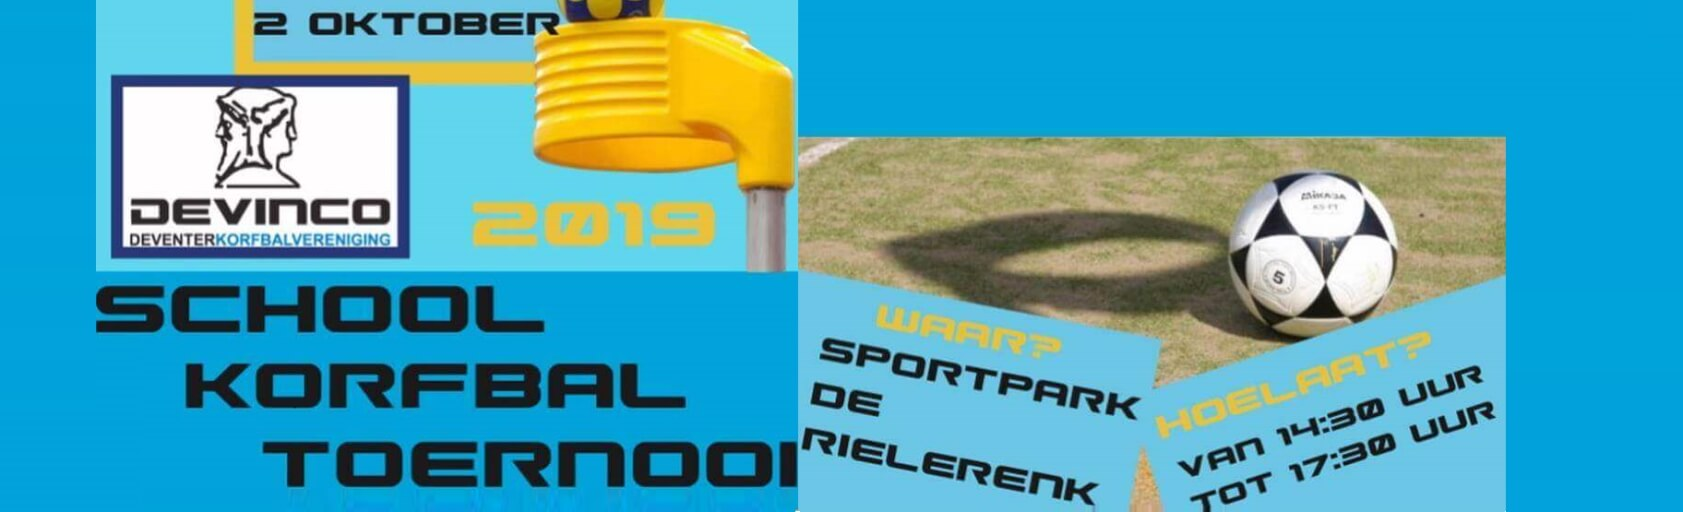 Schoolkorfbal 2019 Deventer flyer slider